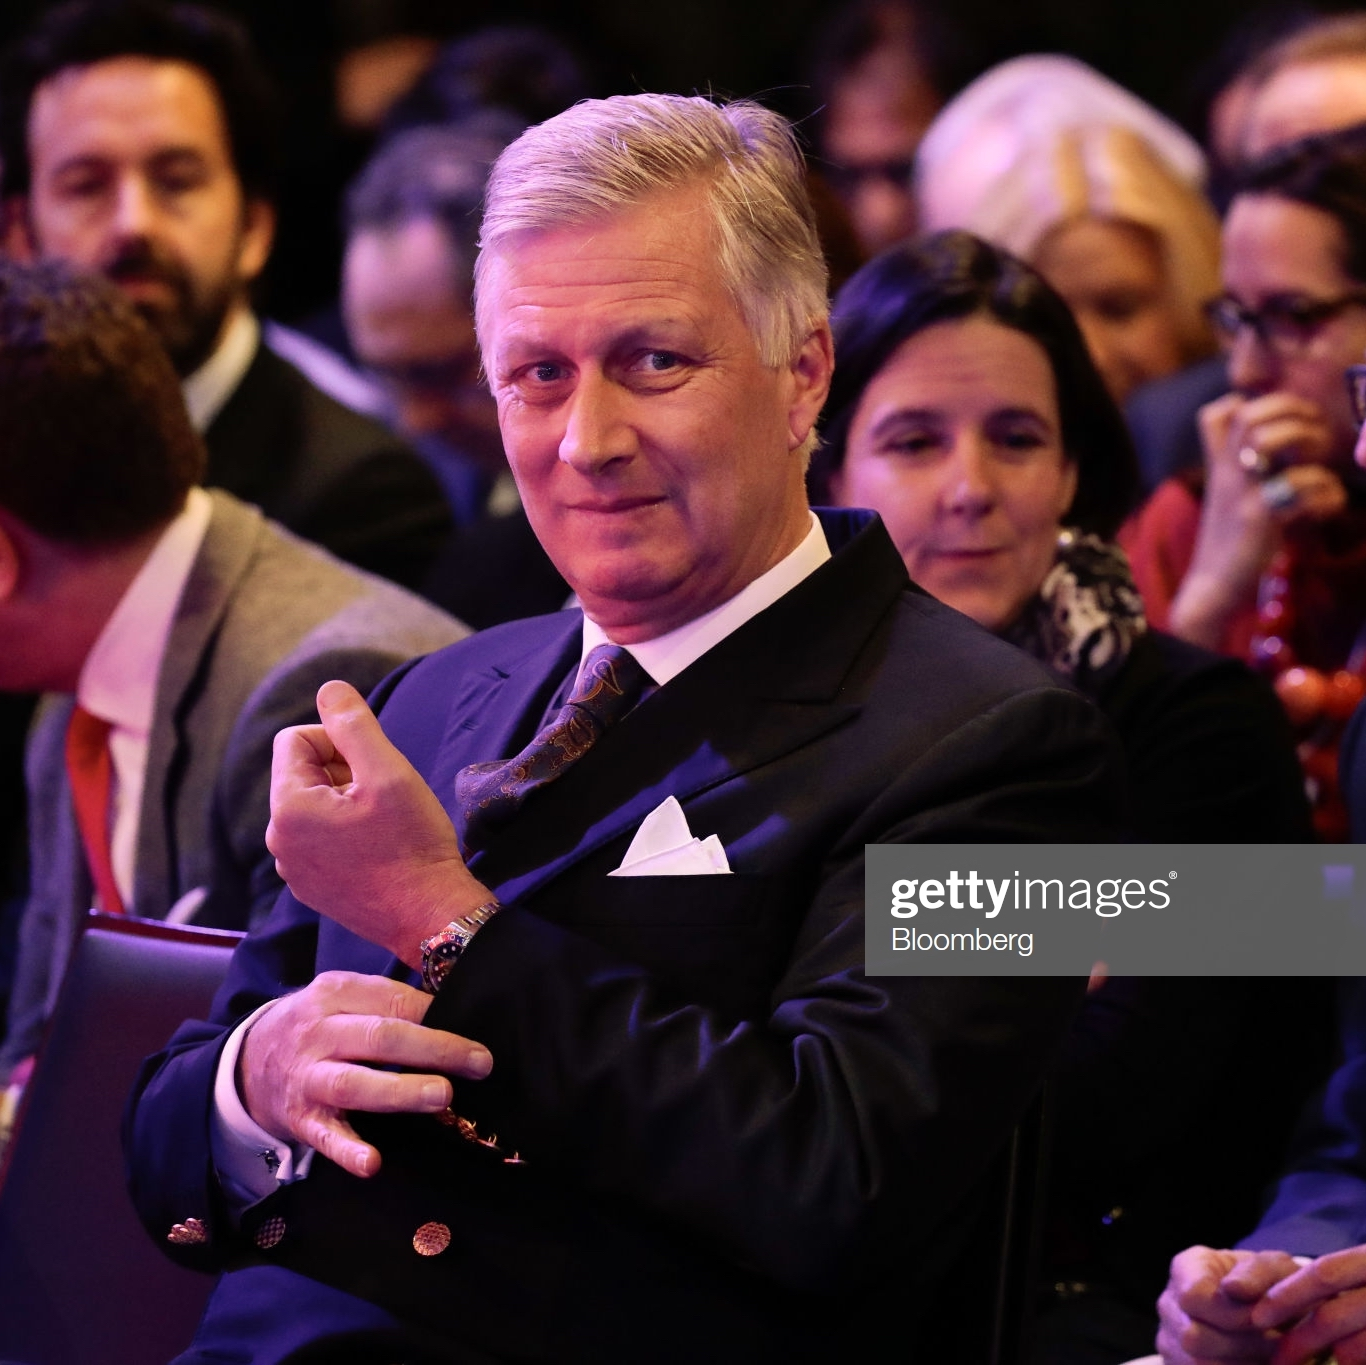 King Philippe of Belgium - Photo by Jason Alden/Bloomberg via Getty Images